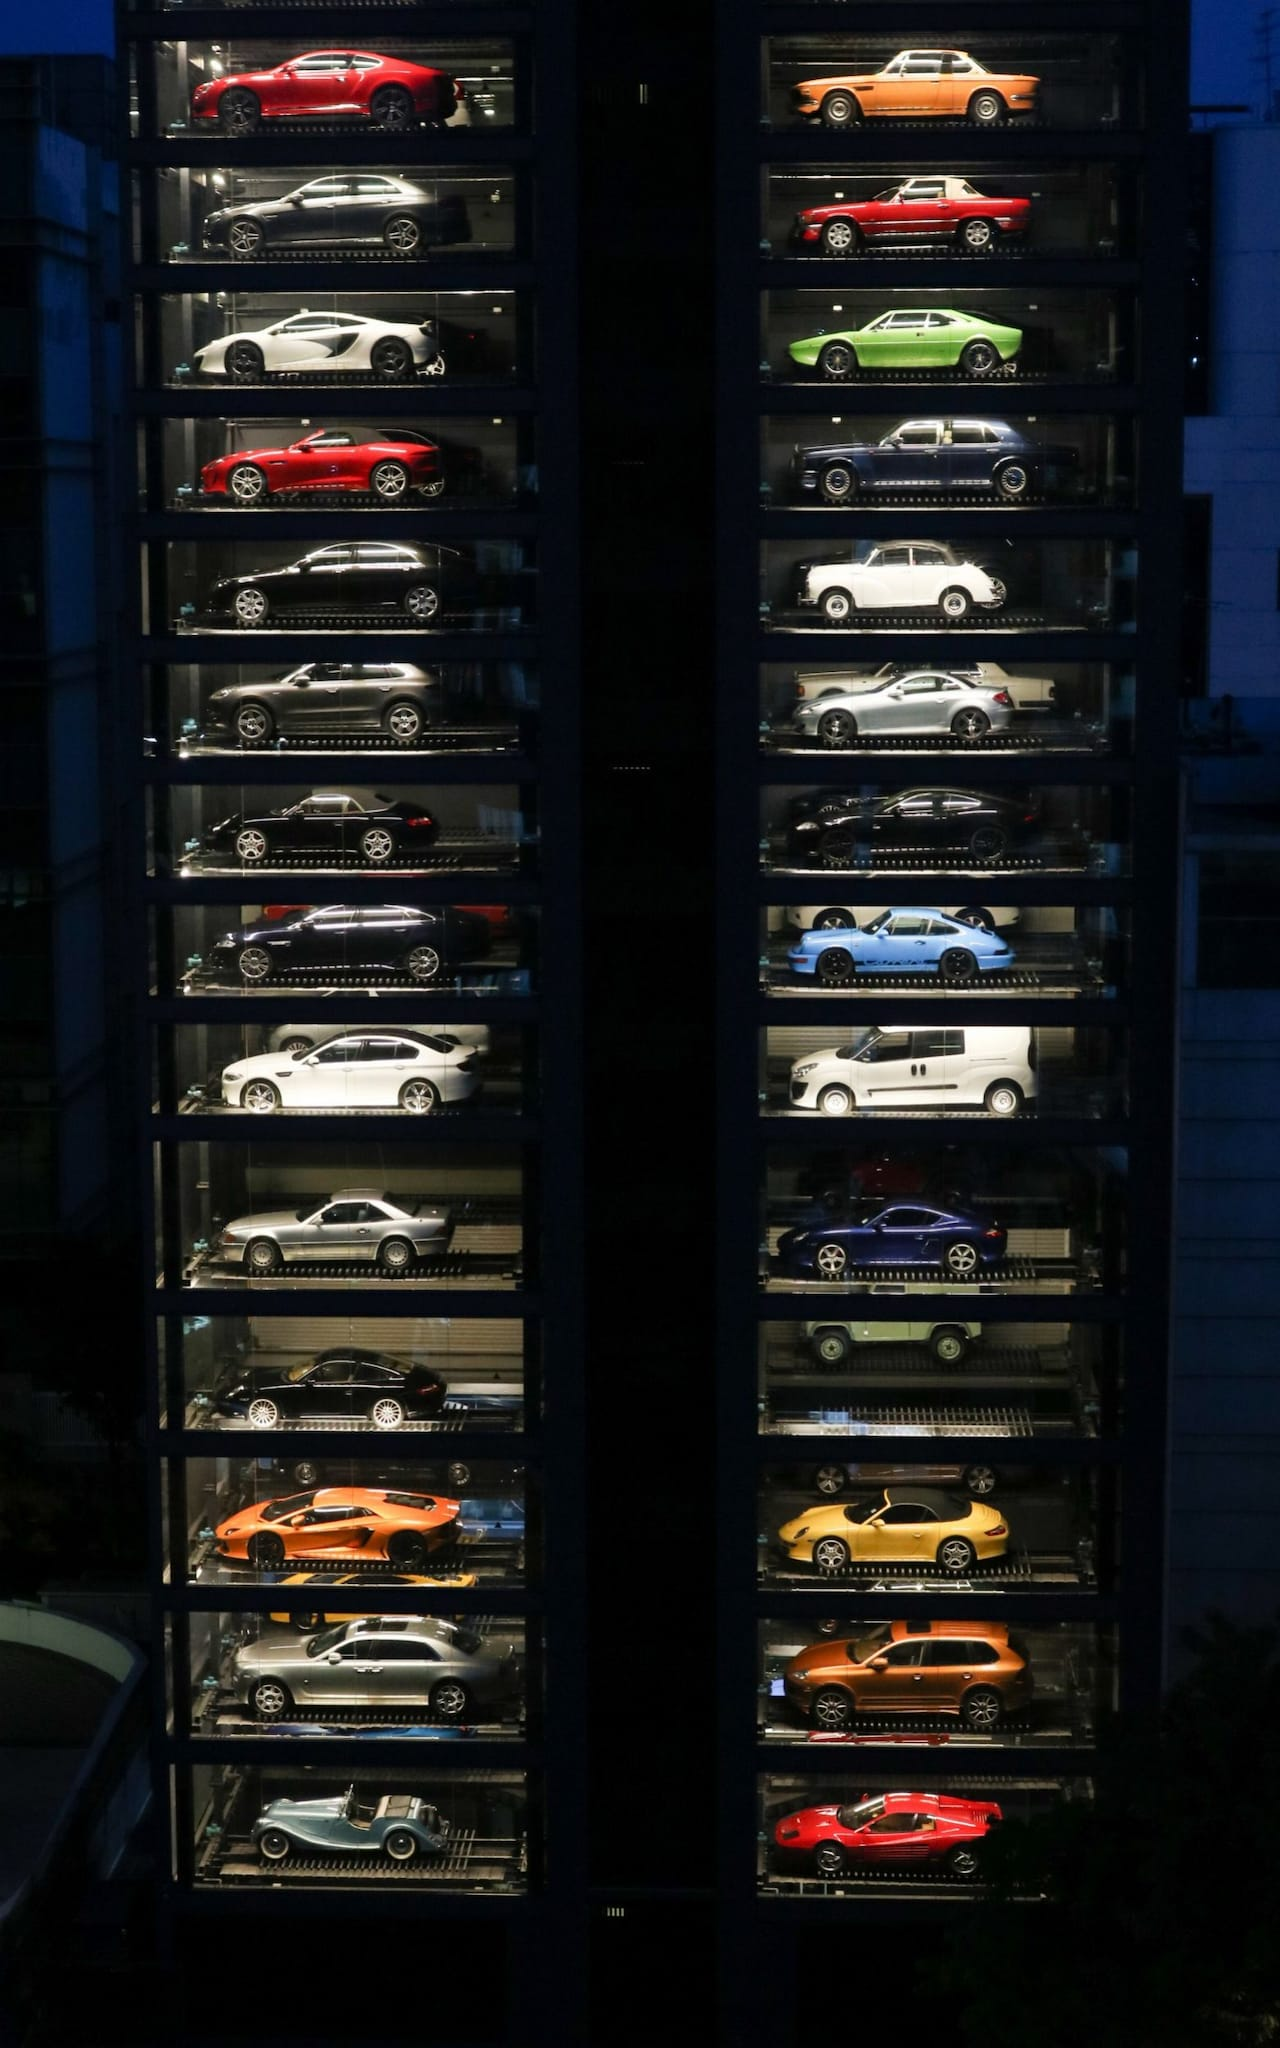 Coming soon: a 'car vending machine'